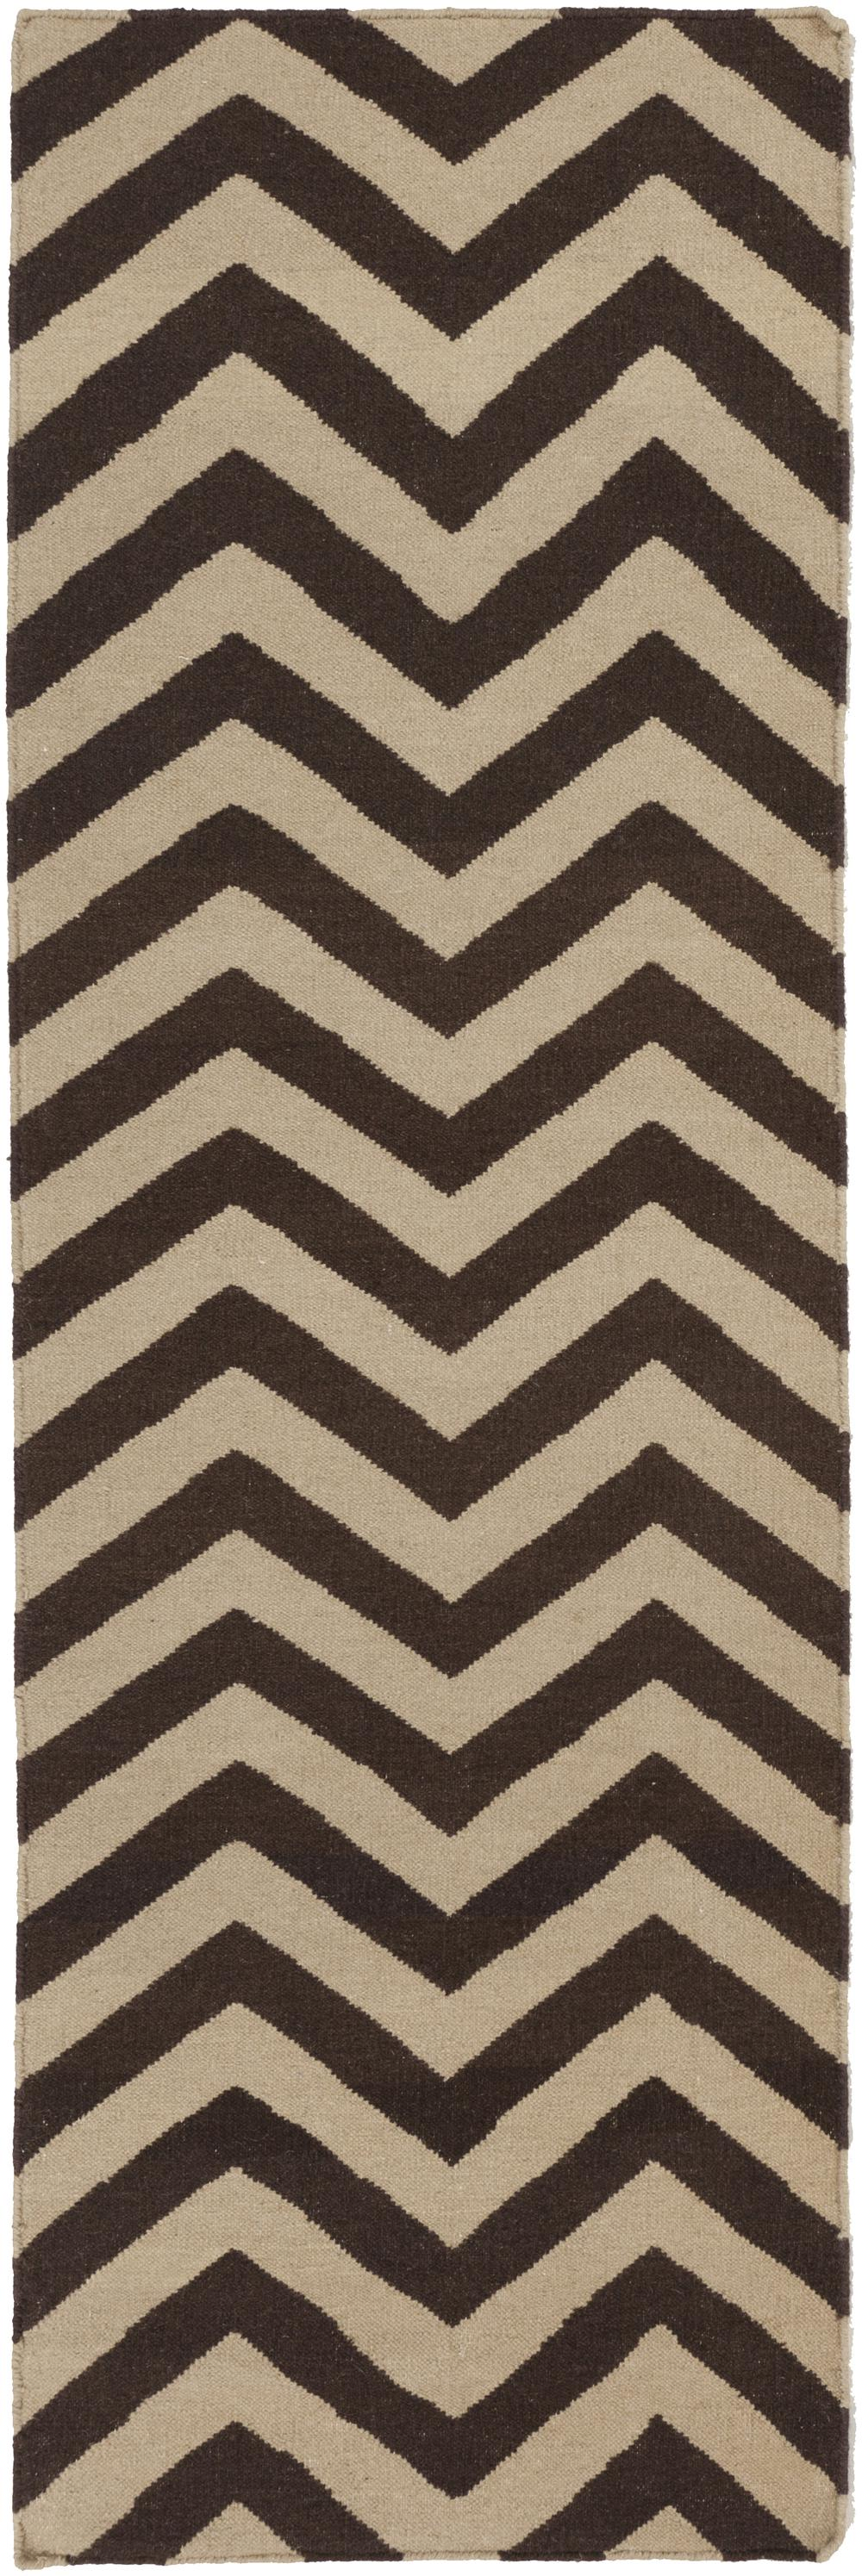 Surya Frontier Ft99 Brown Area Rug Free Shipping